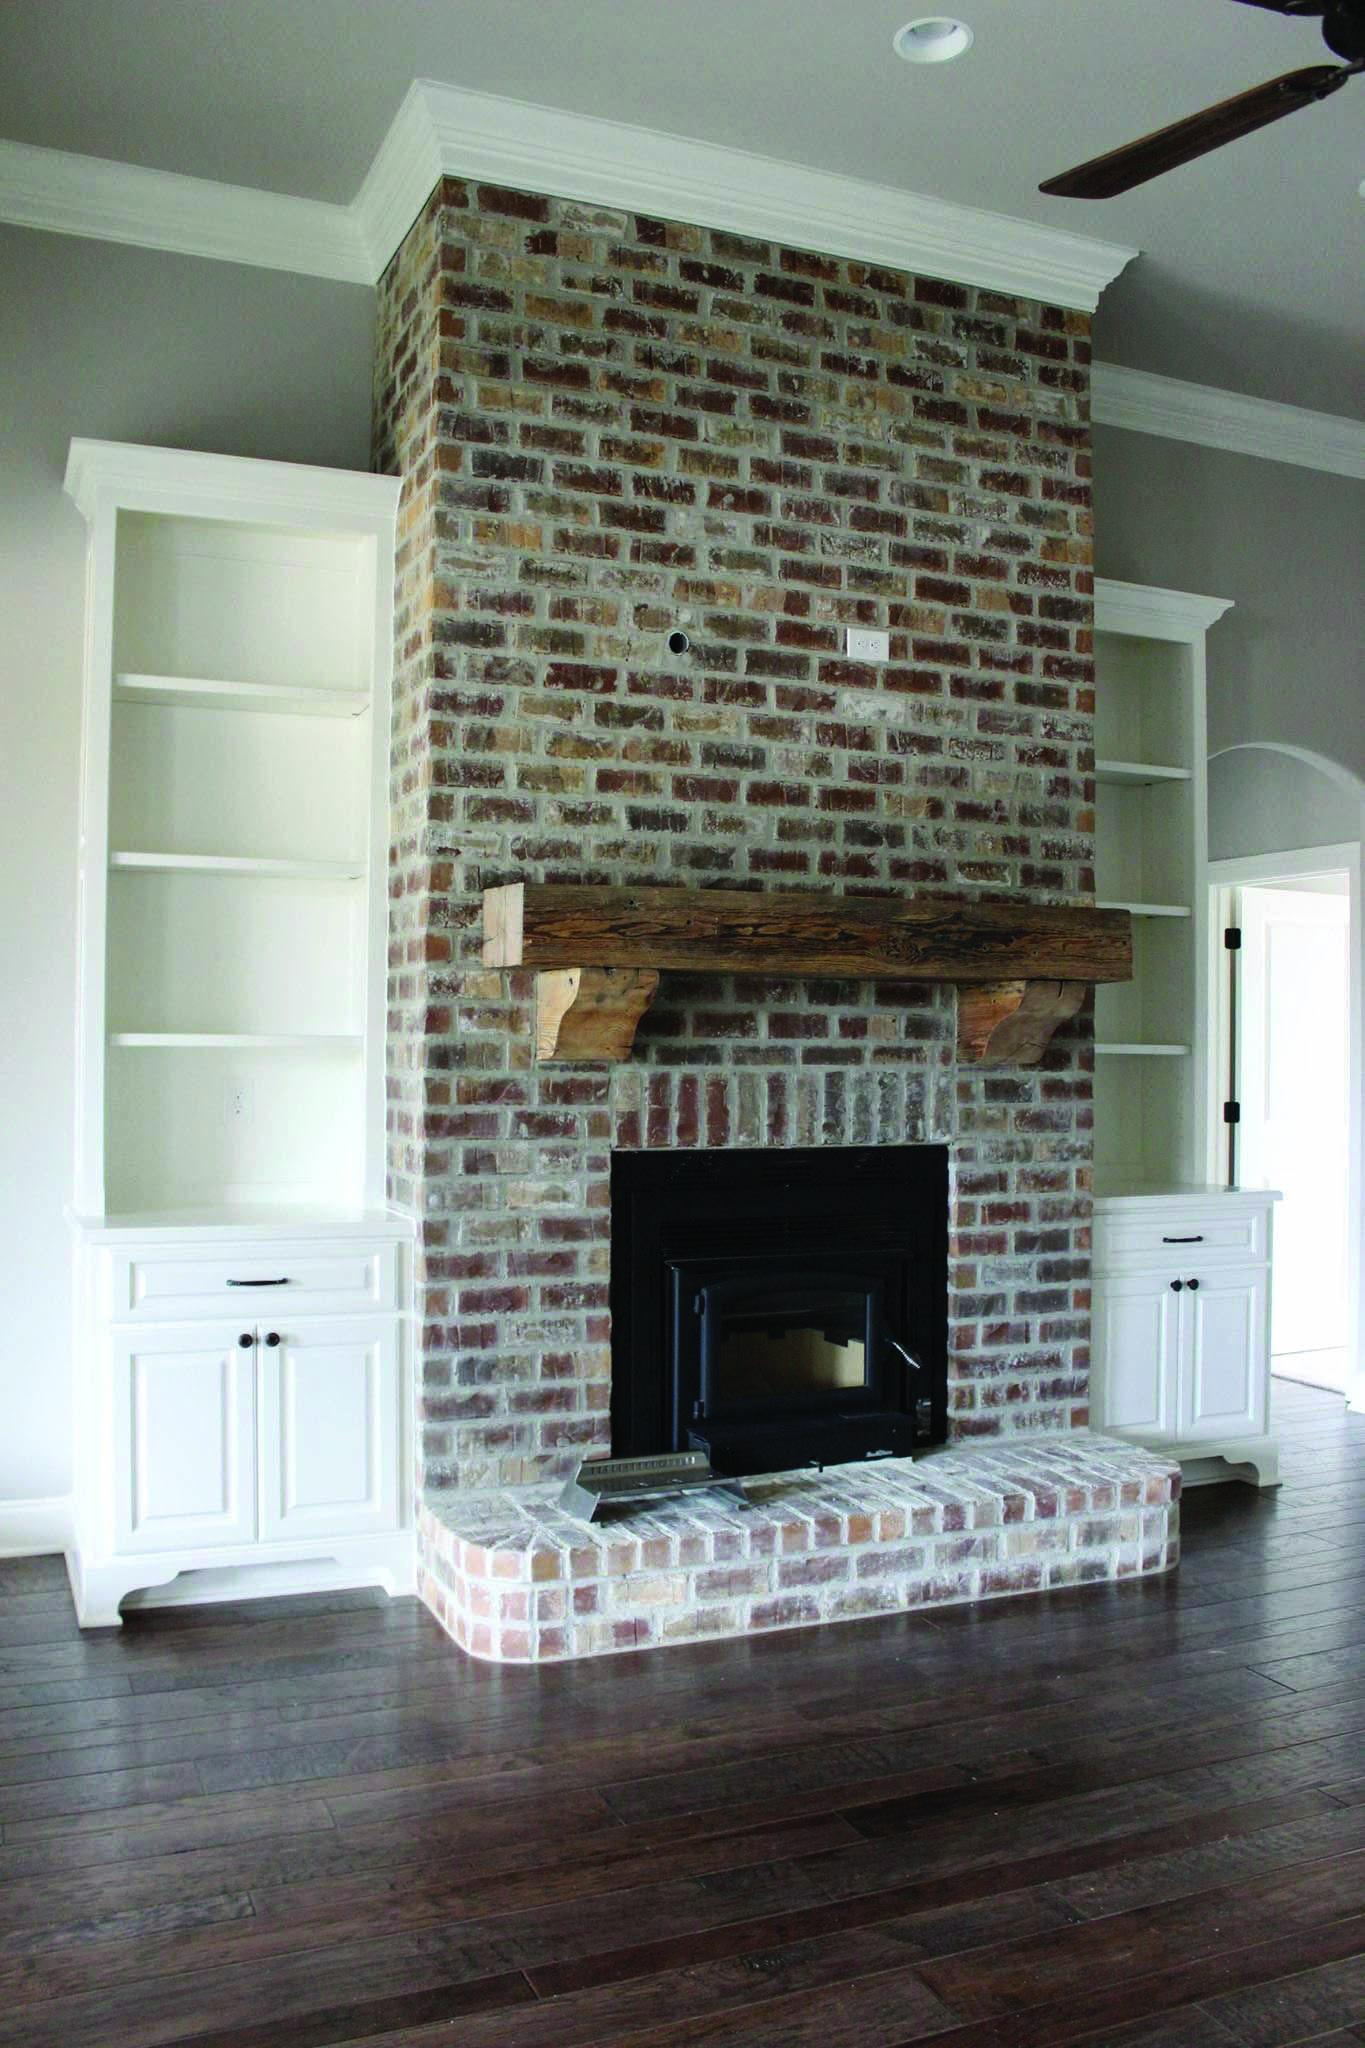 Excellent fireplace brick replacement panels just on nyhomesinc.com #whitebrickfireplace